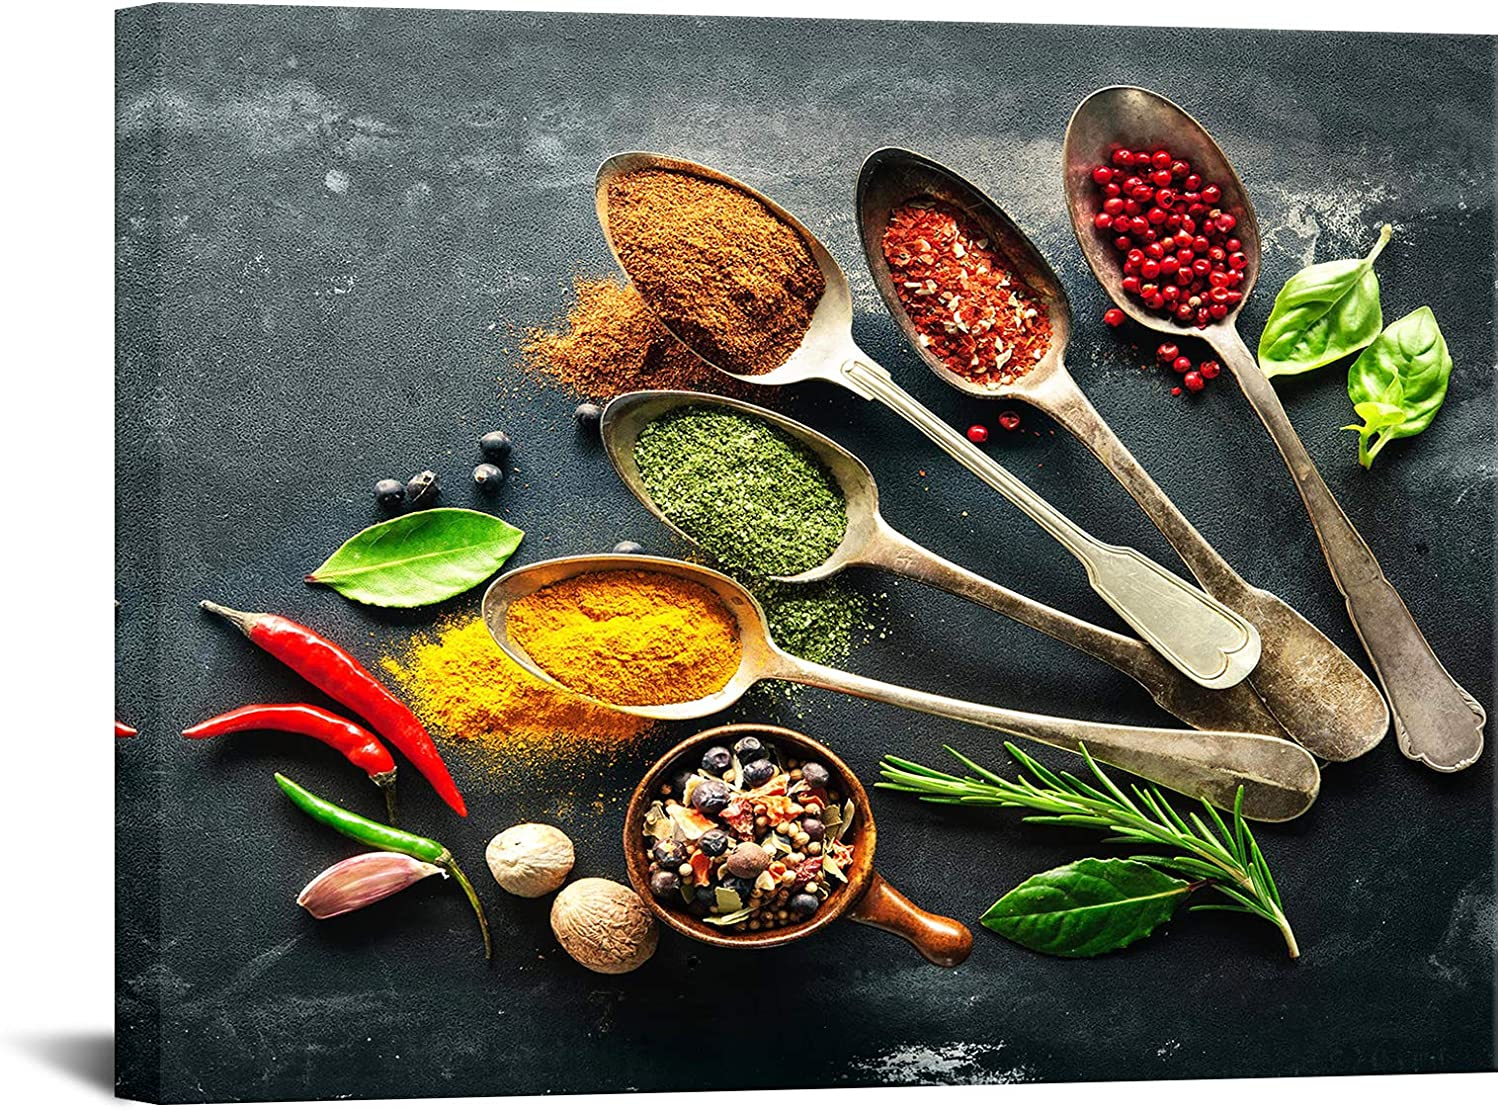 Biuteawal Various Spices in Spoons Canvas Wall Art Food Picture Print on Canvas Home Decoration Gift Kitchen Dining Room Restaurant Wall Decor Stretched and Framed Ready to Hang 24x32inch